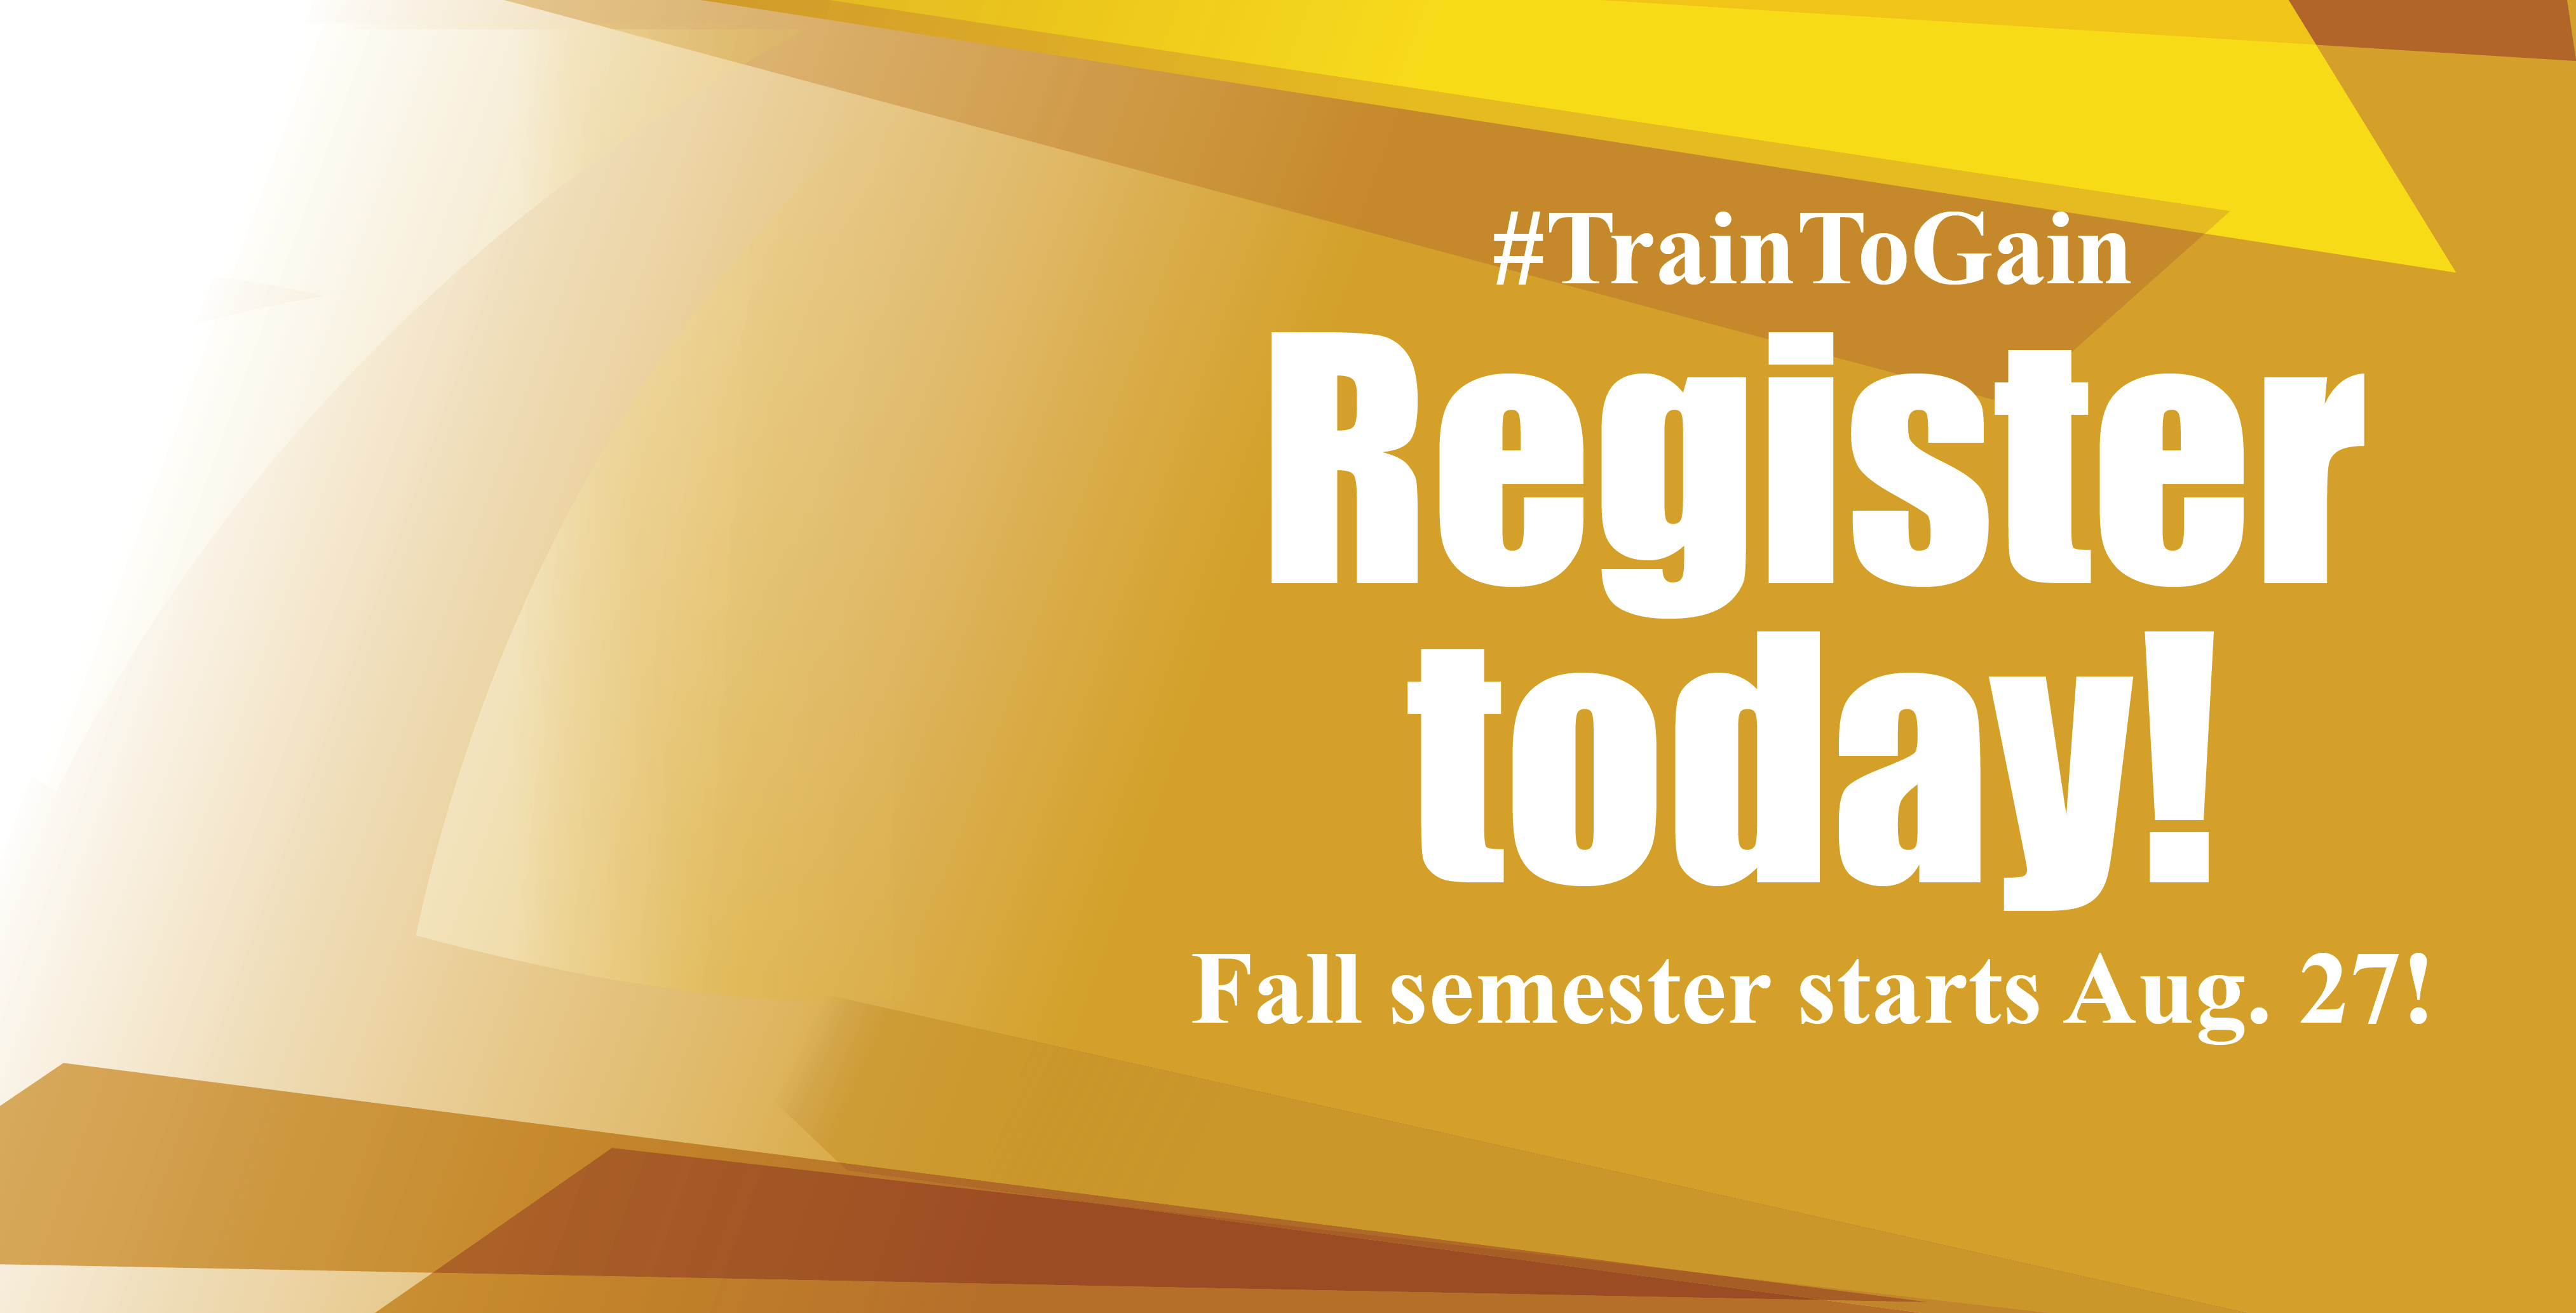 Register today. The fall semester starts august 27